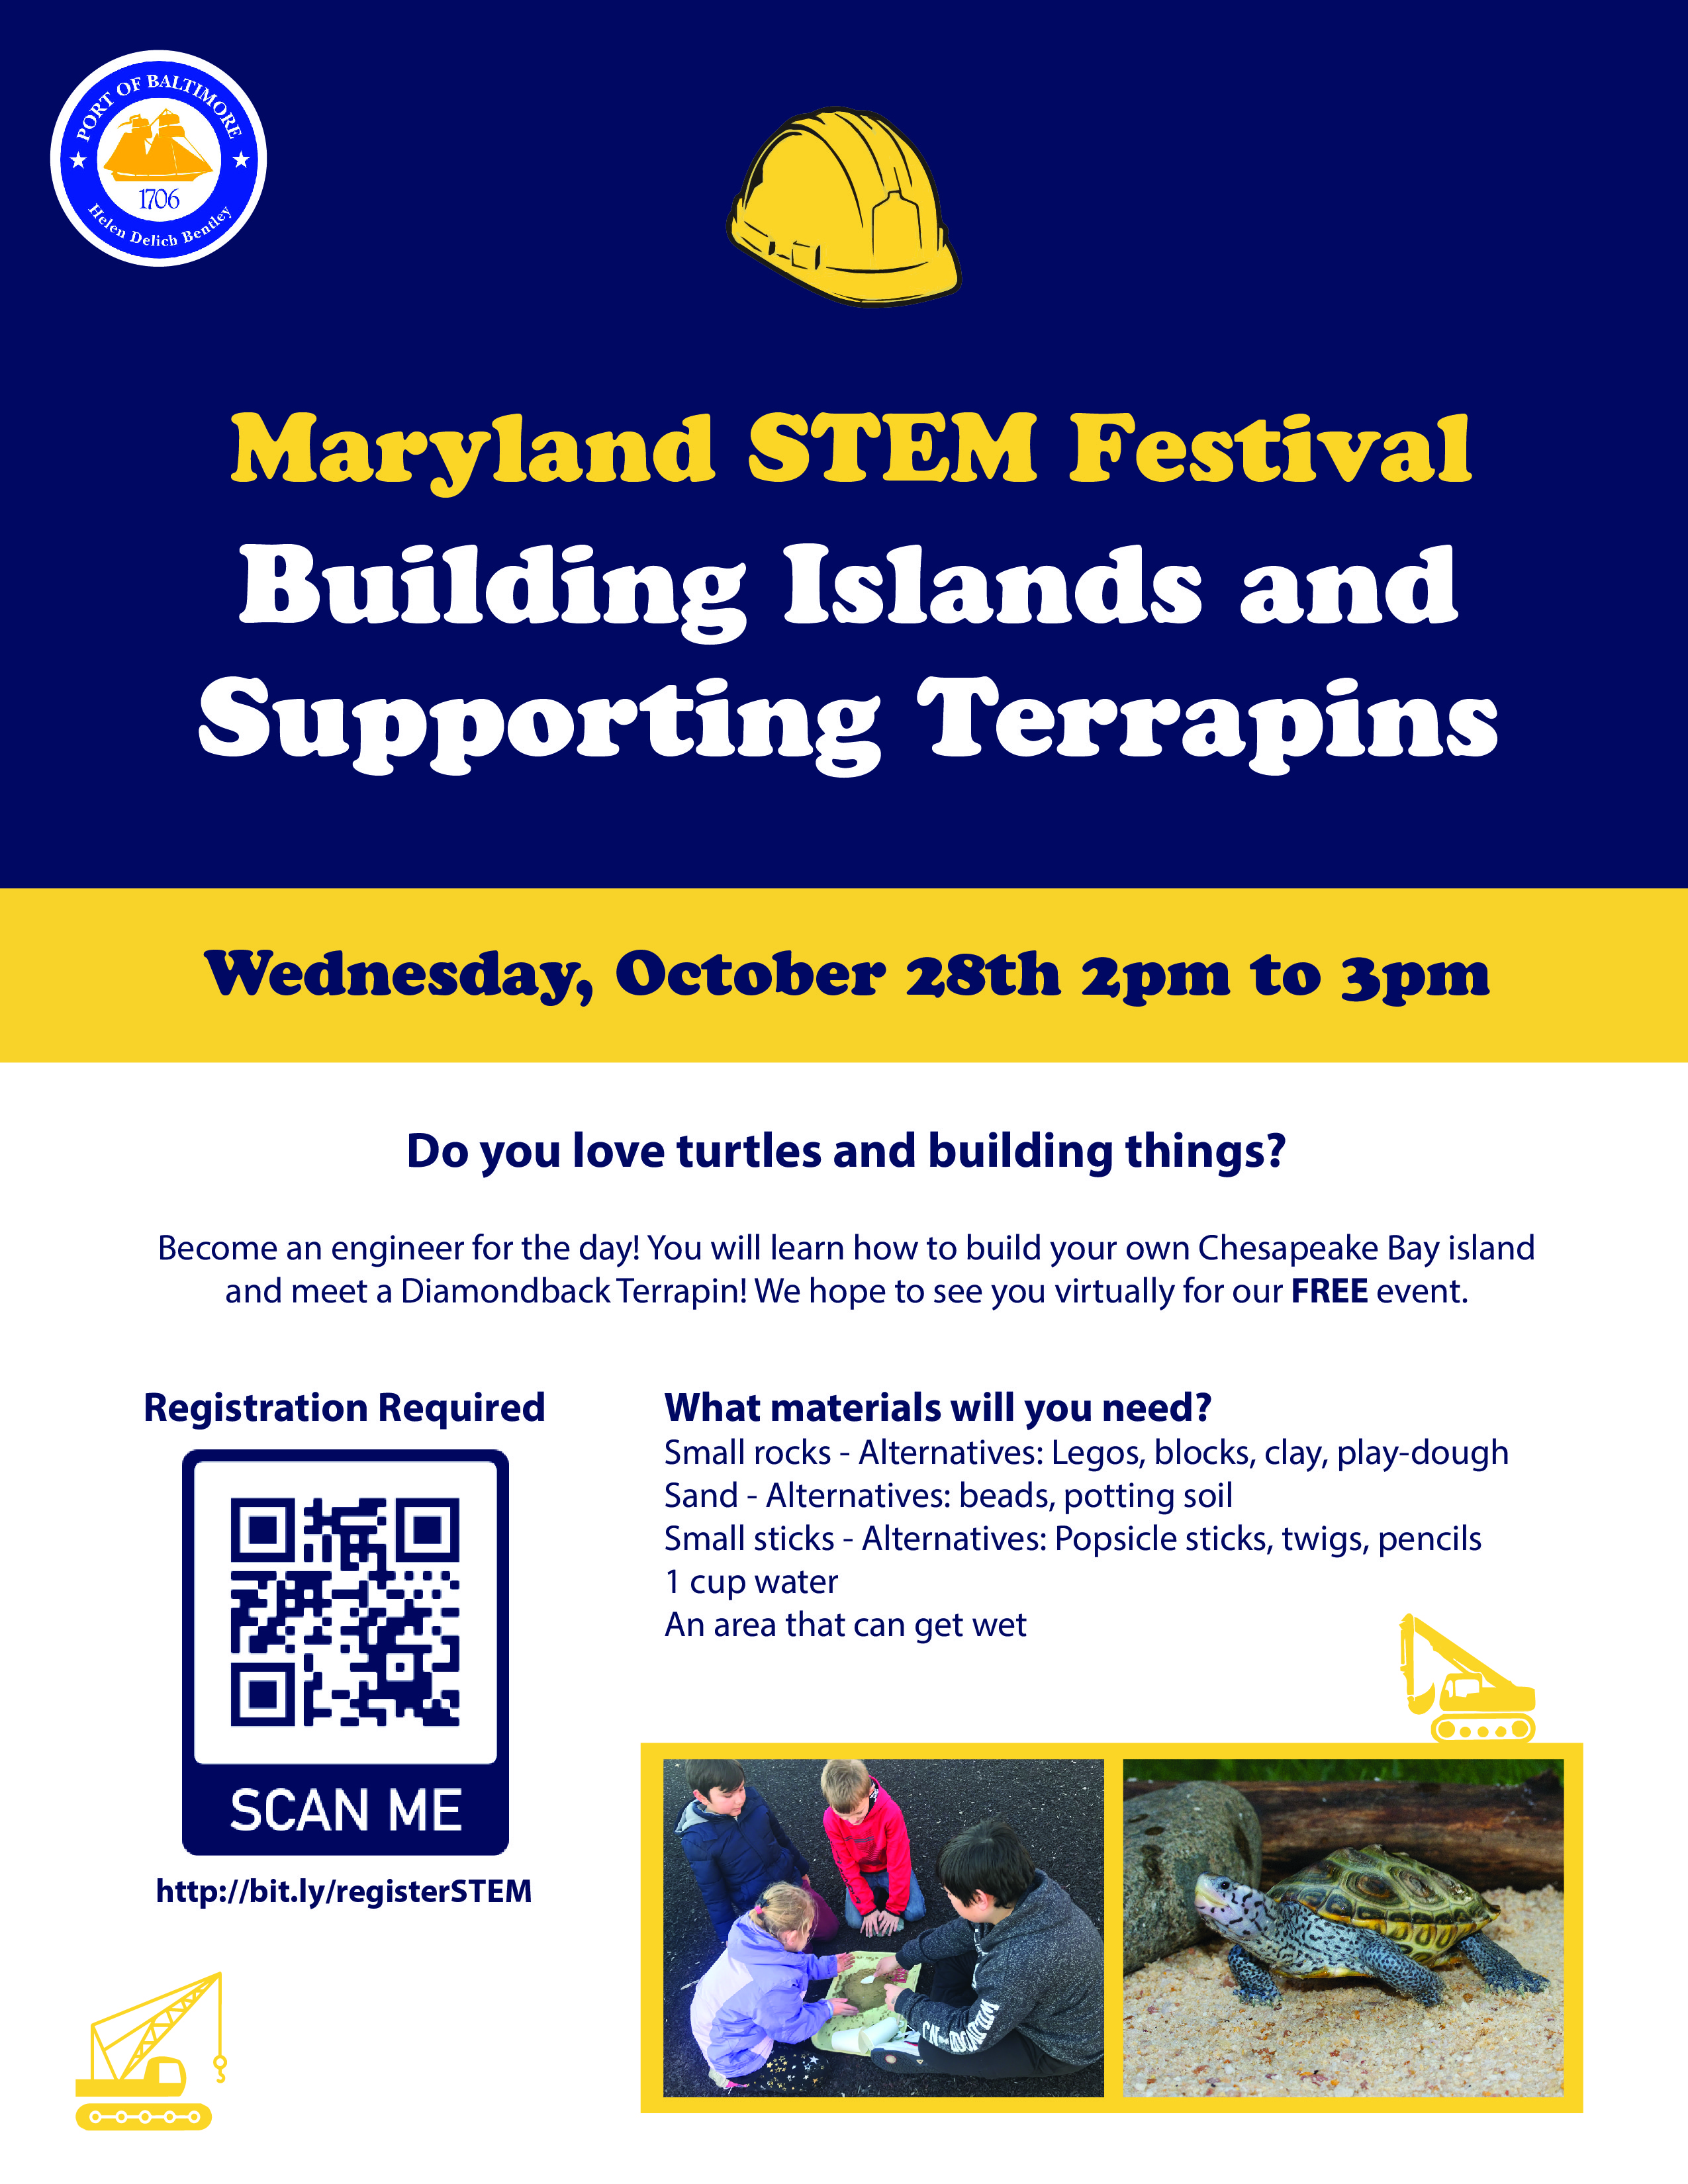 md stem festival building islands and supporting terrapins 2020